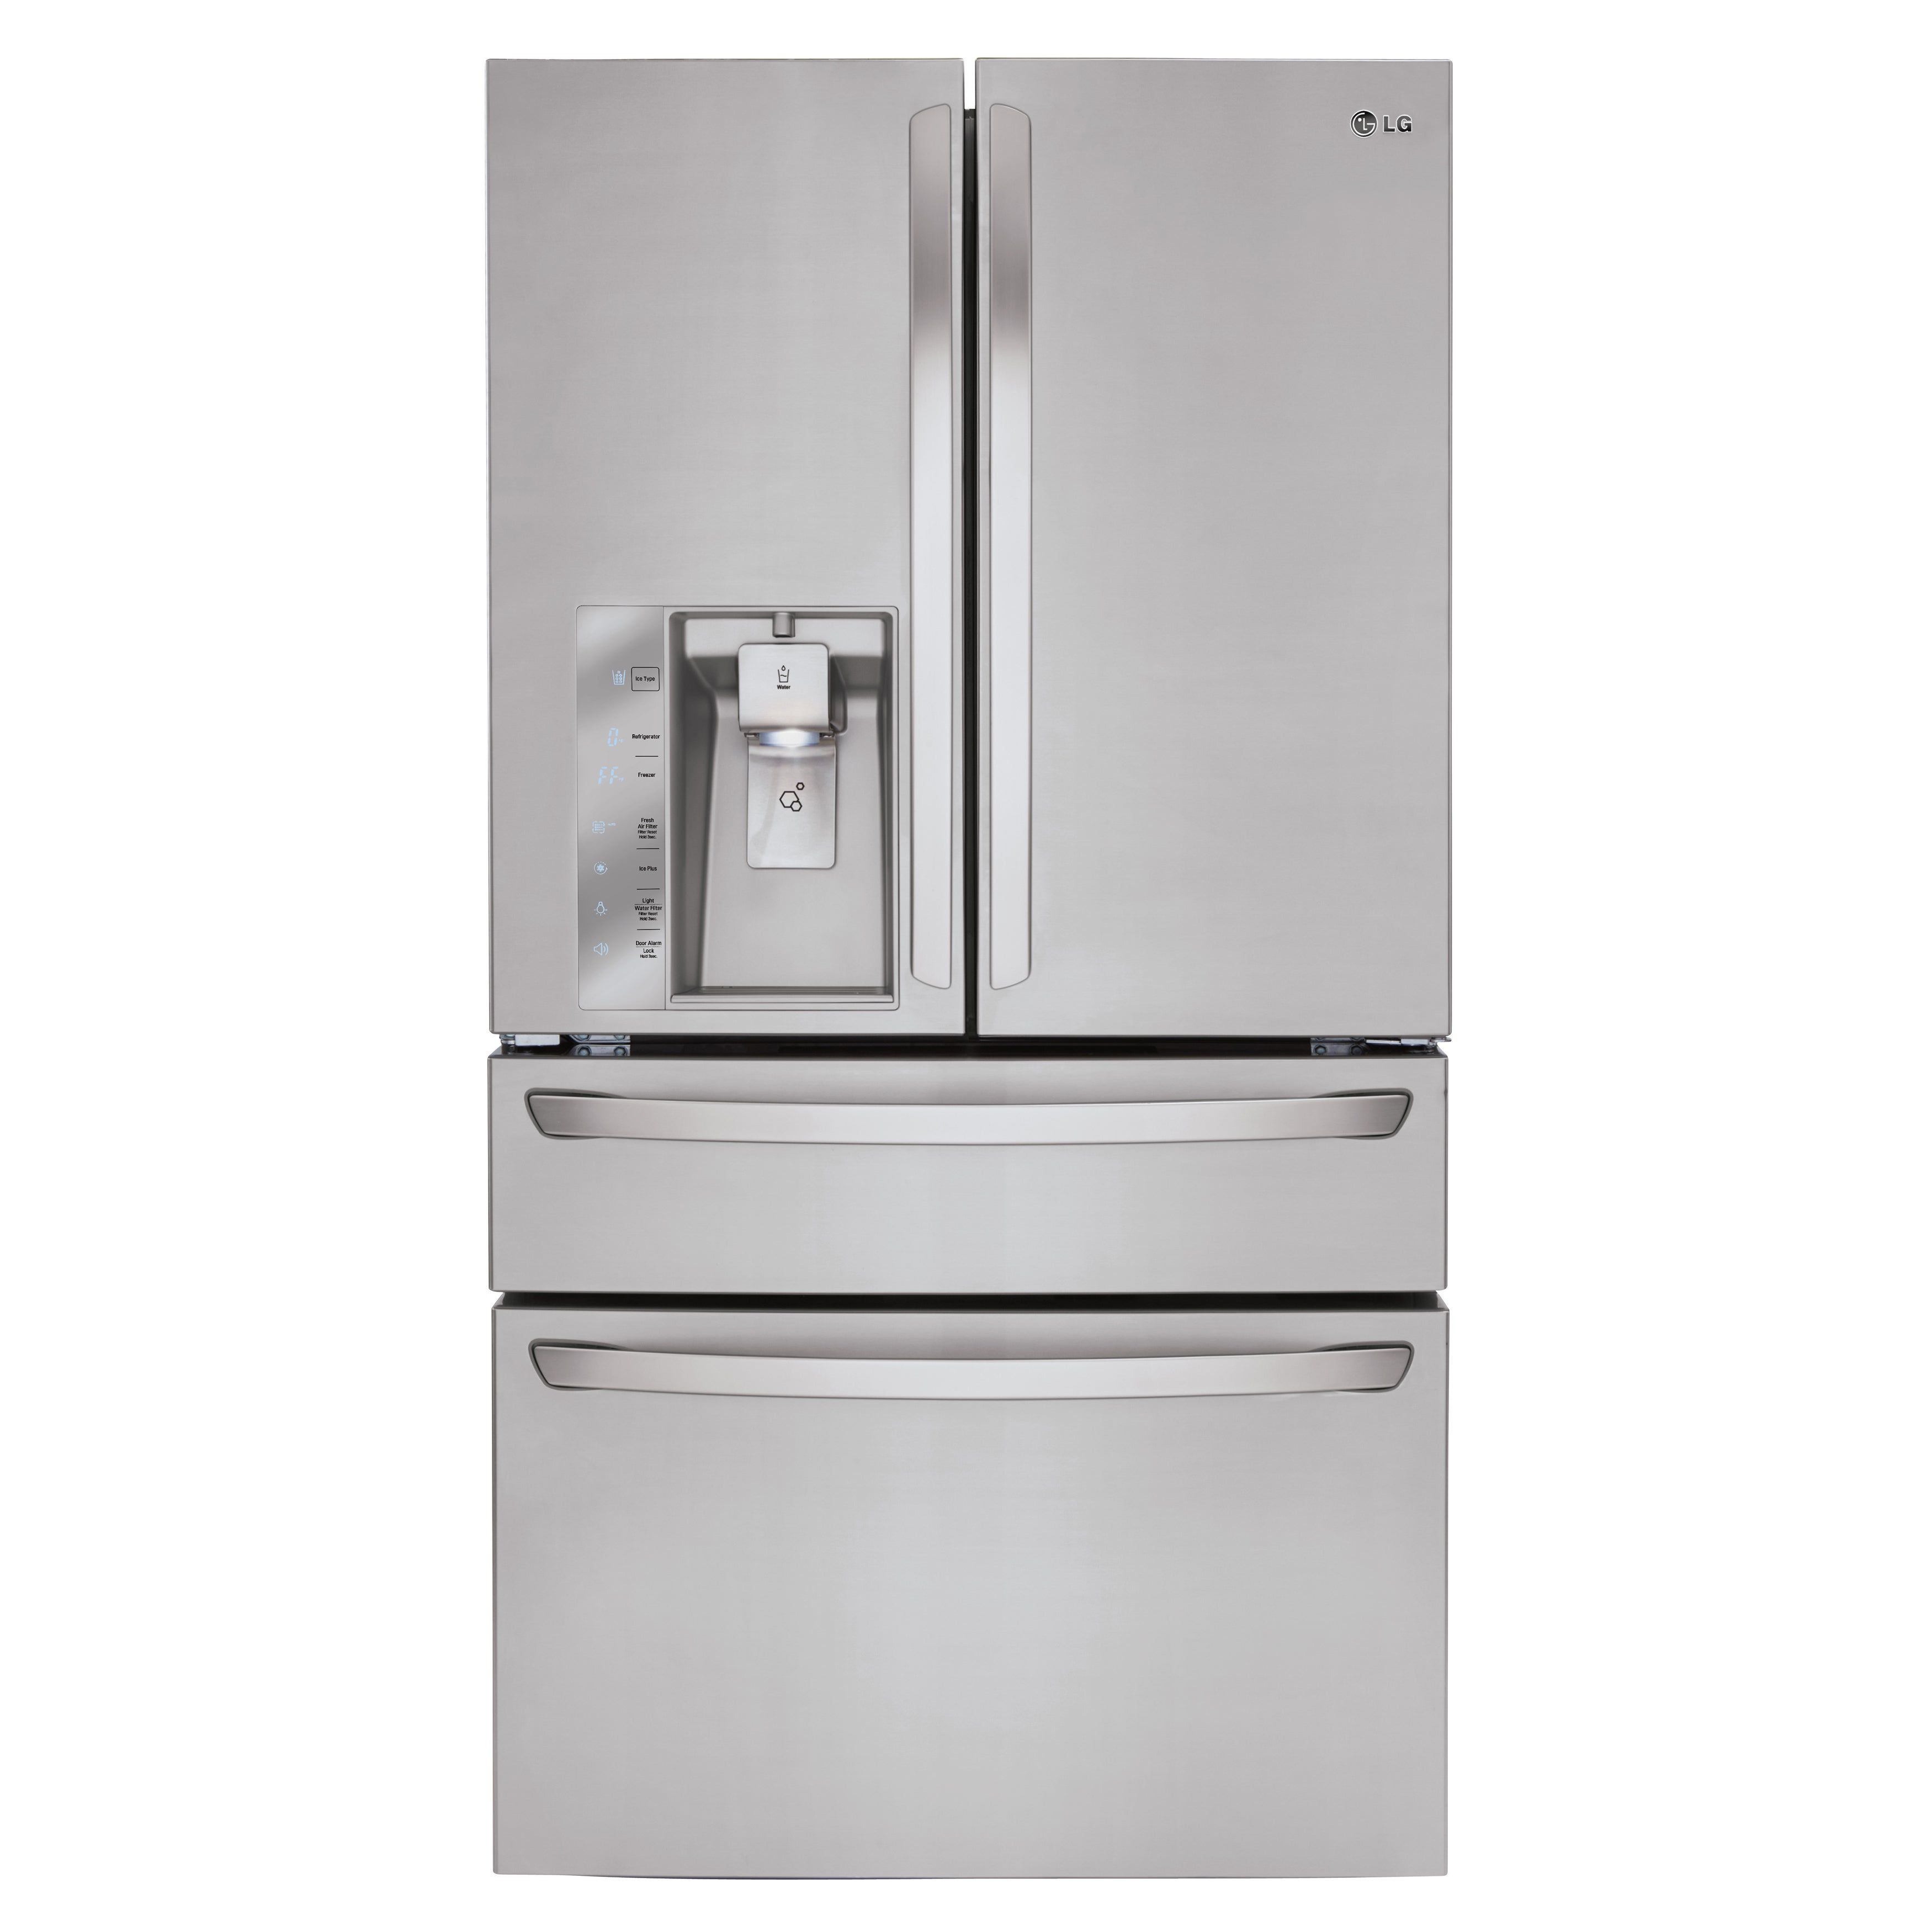 LG LMXS30756S 30-cubic Foot 4-door French Door Refrigerat...